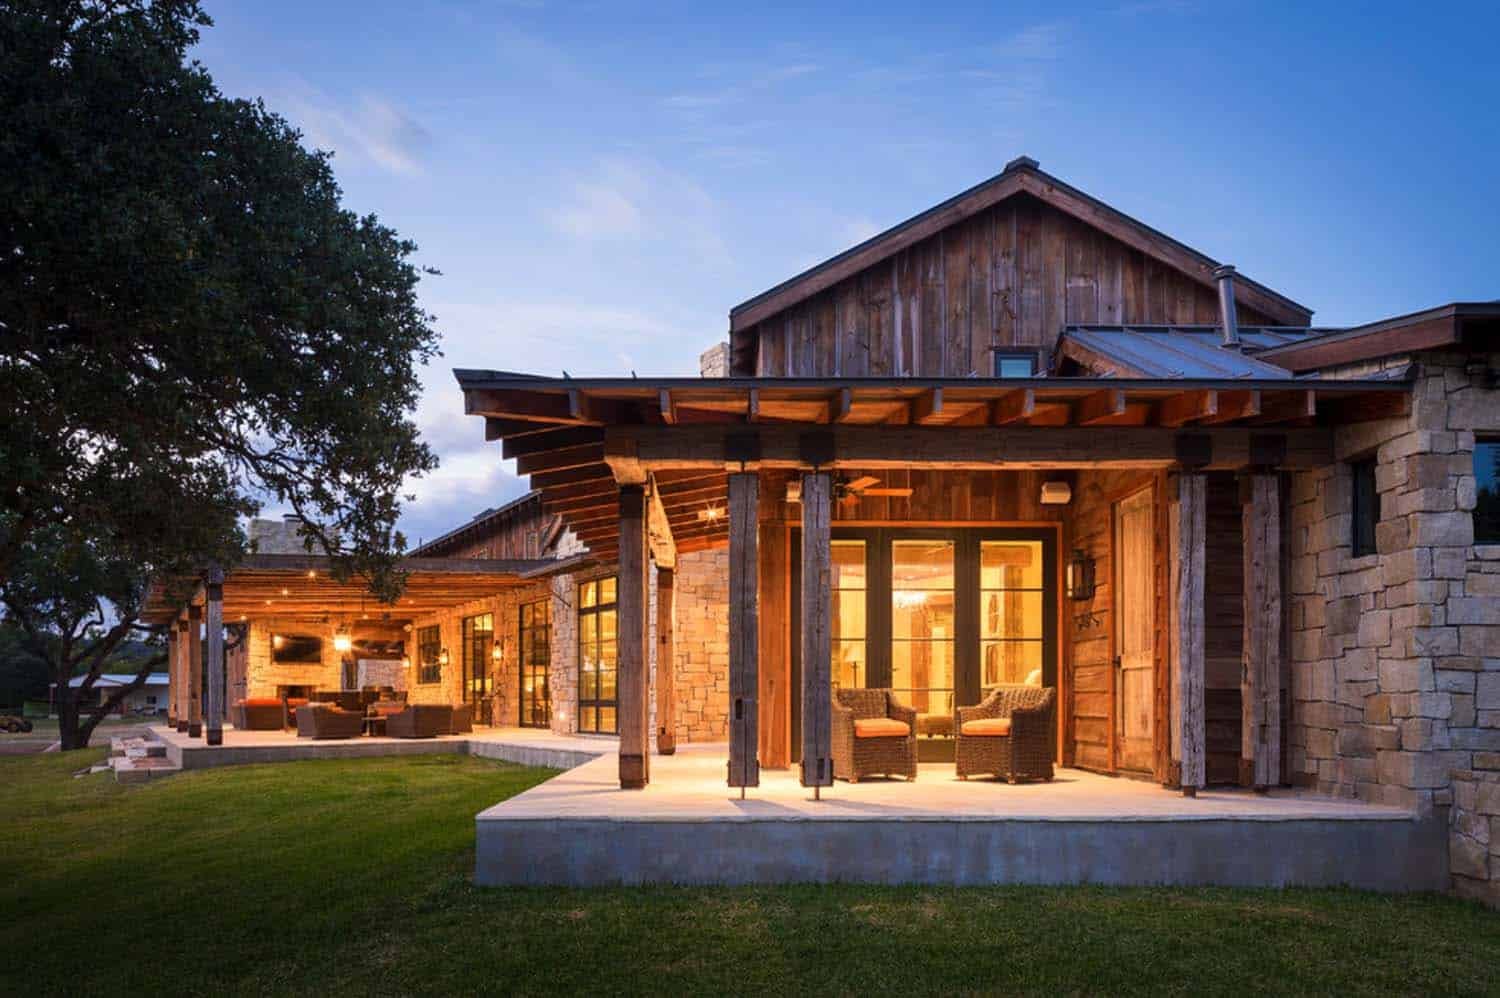 Modern rustic barn style retreat in texas hill country for Executive ranch homes